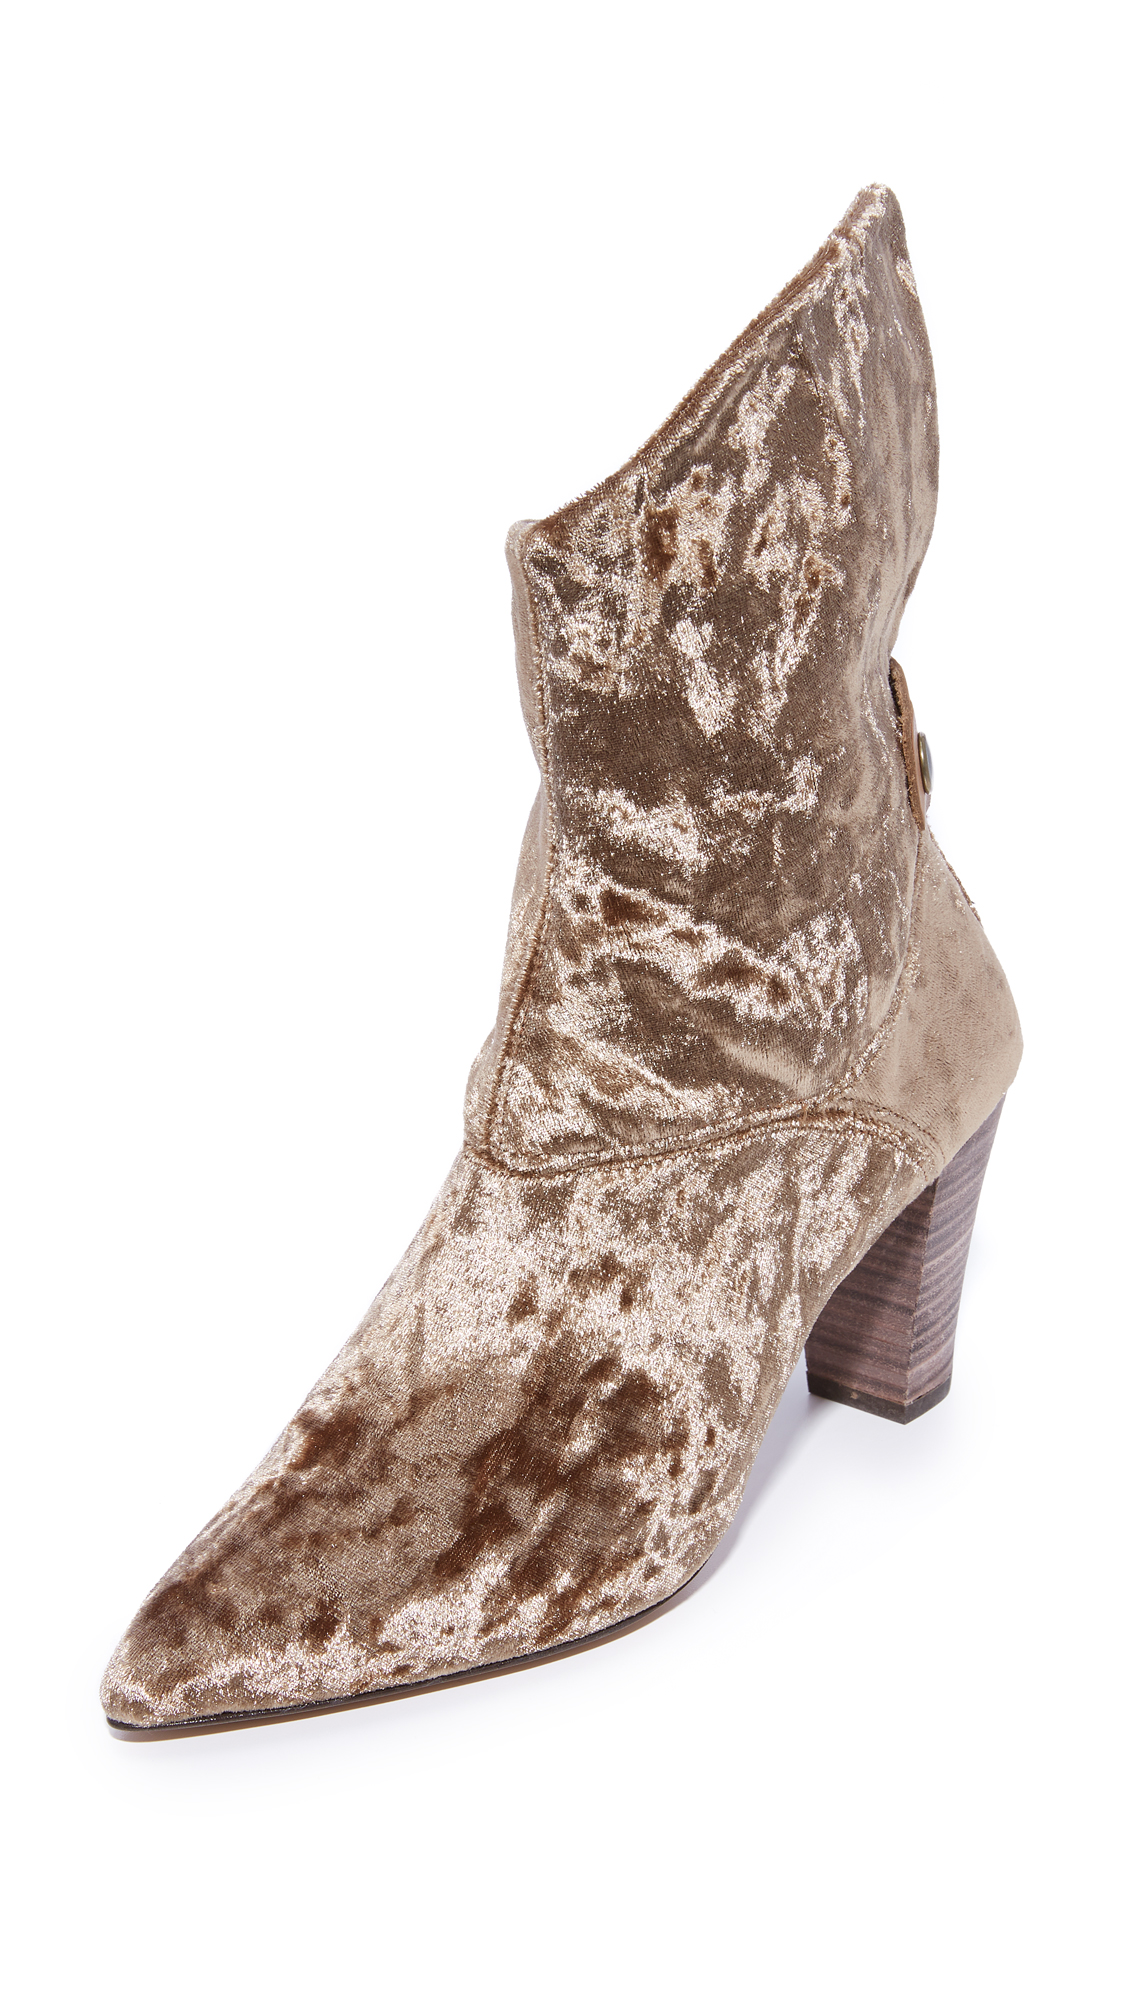 Free People Moonlight Heel Booties - Brown